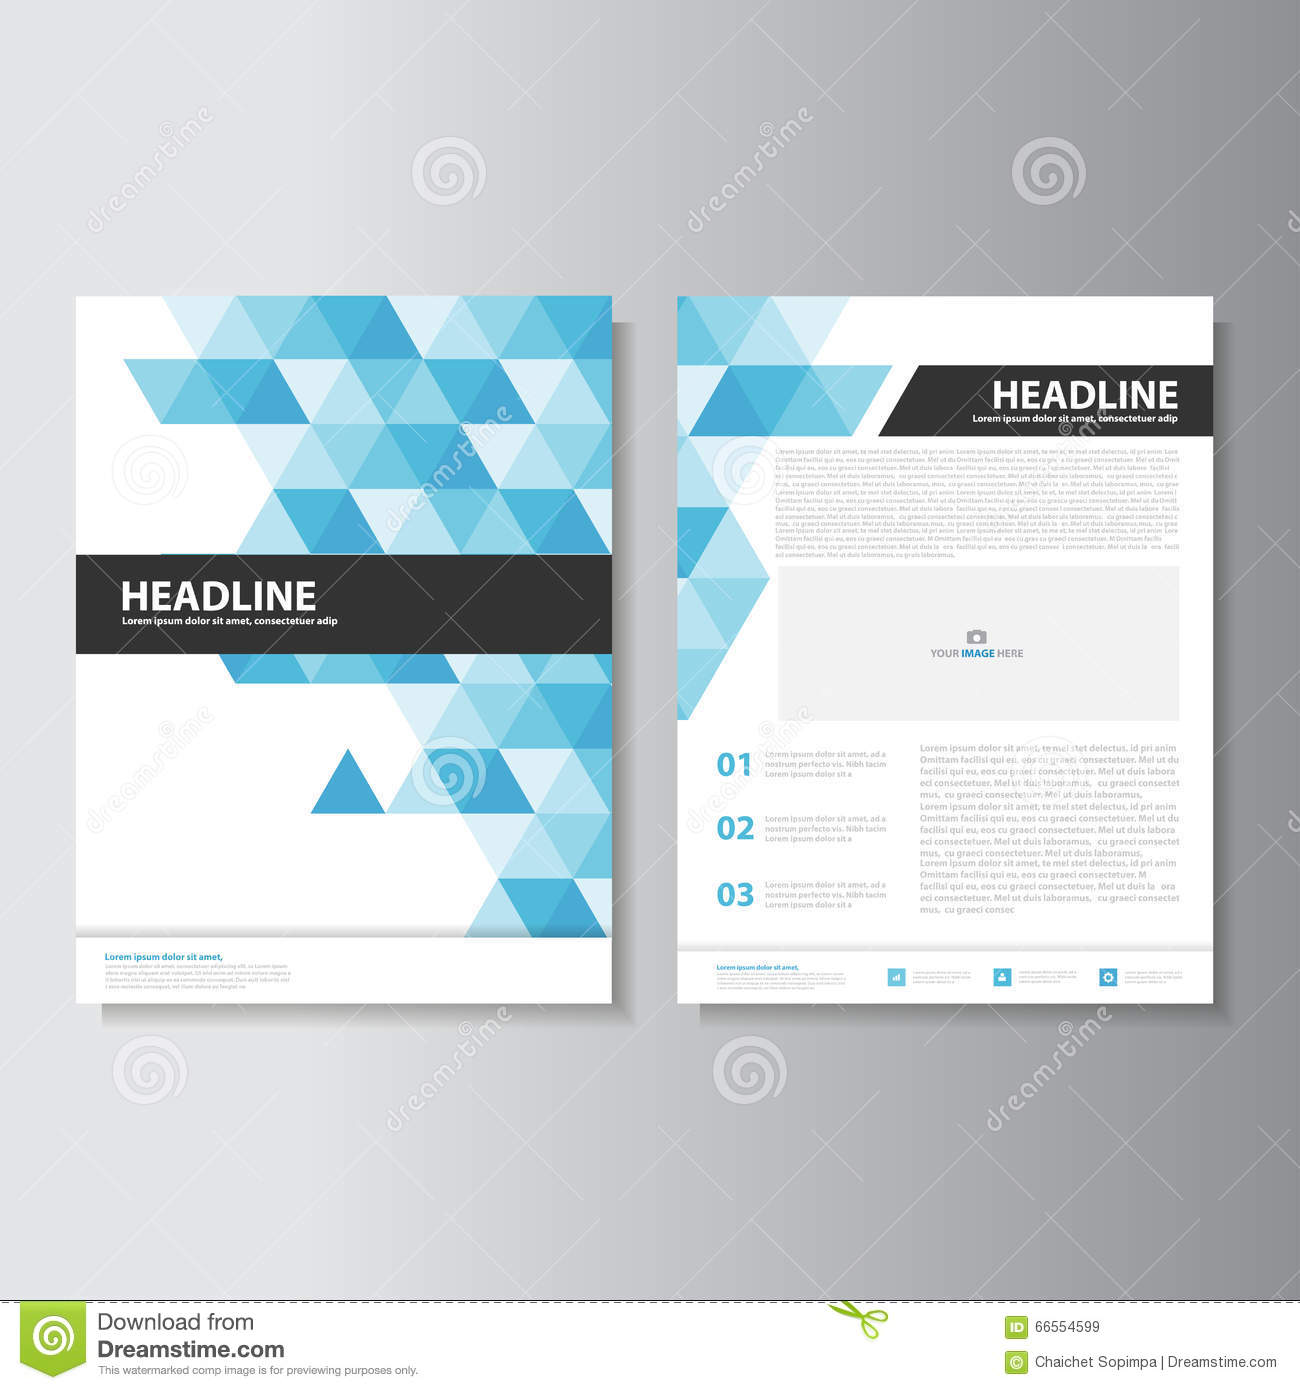 blue and black brochure flyer leaflet presentation templates blue and black brochure flyer leaflet presentation templates infographic elements flat design set for marketing